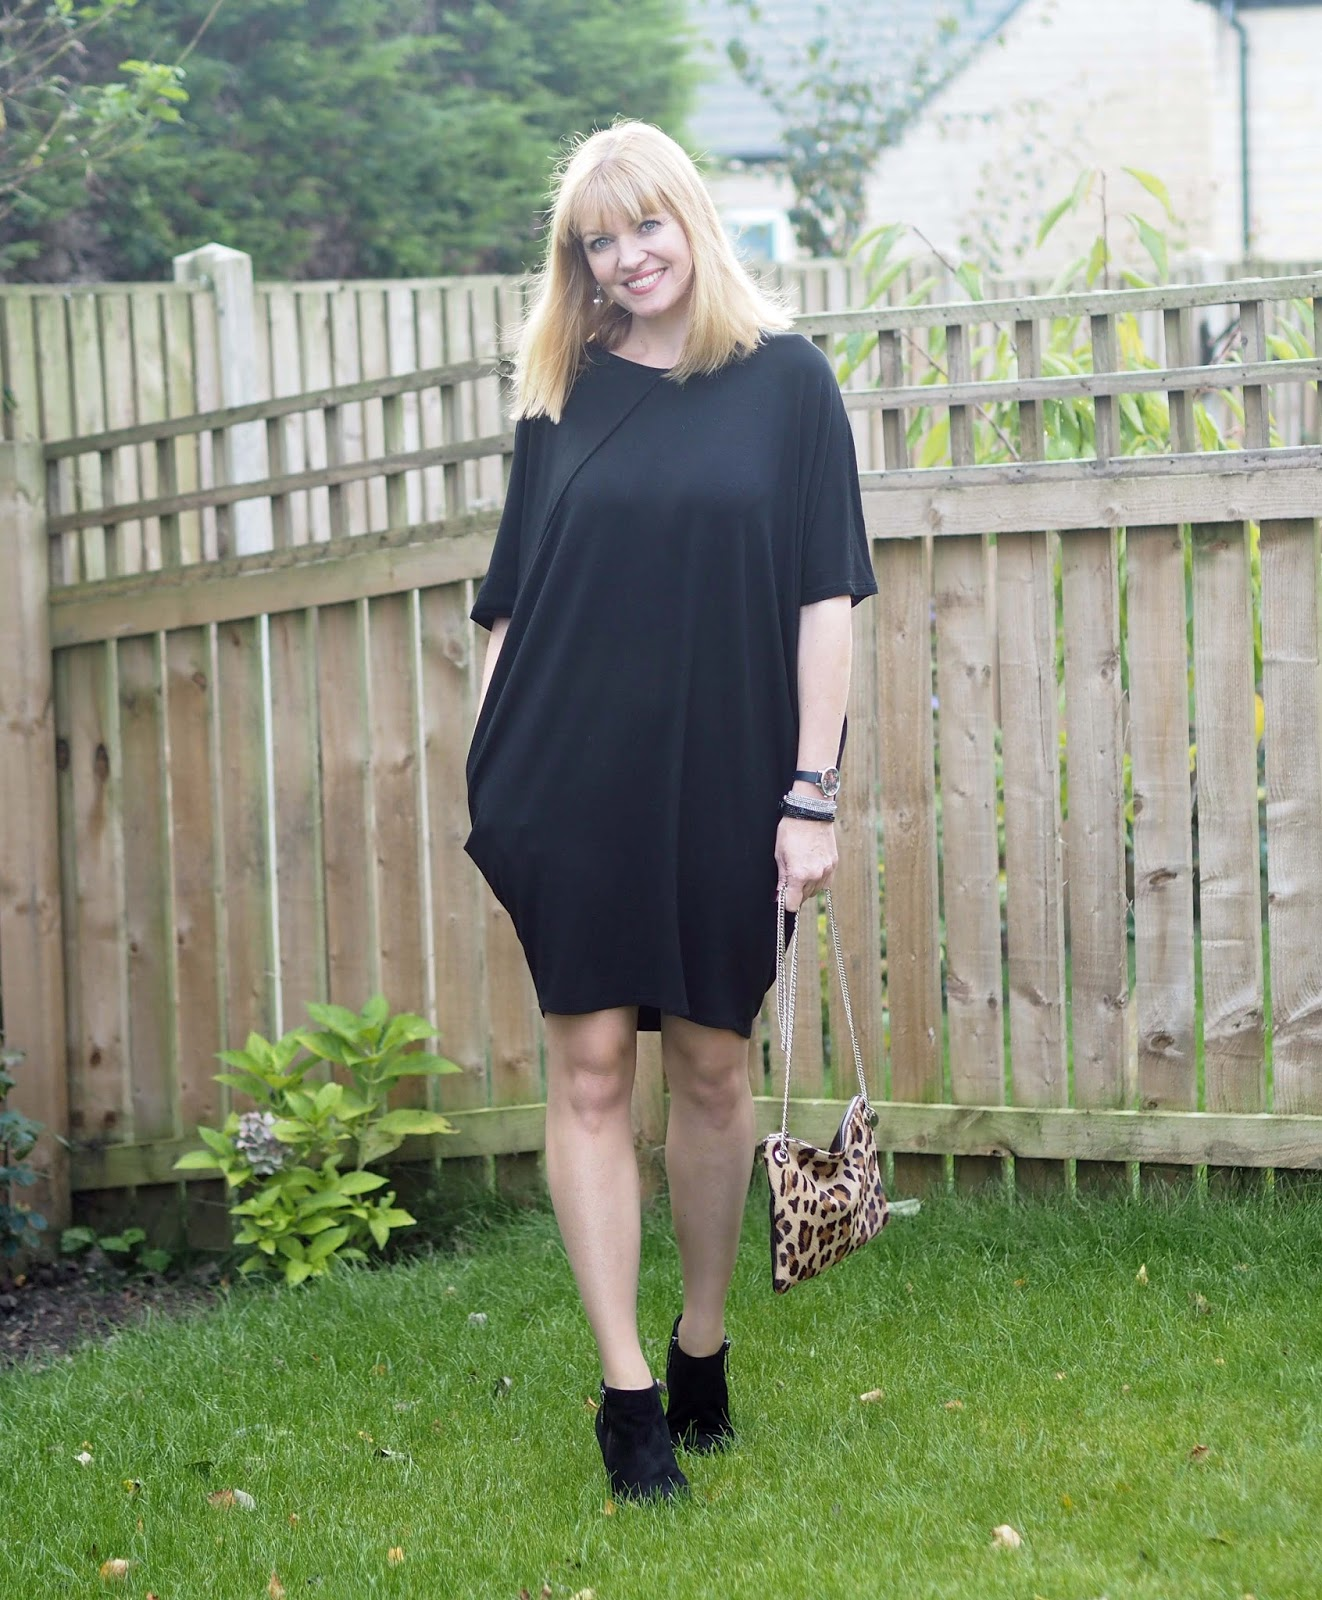 Hope cocoon dress with pockets worn with high-heeled ankle boots and printed tights, pantyhose